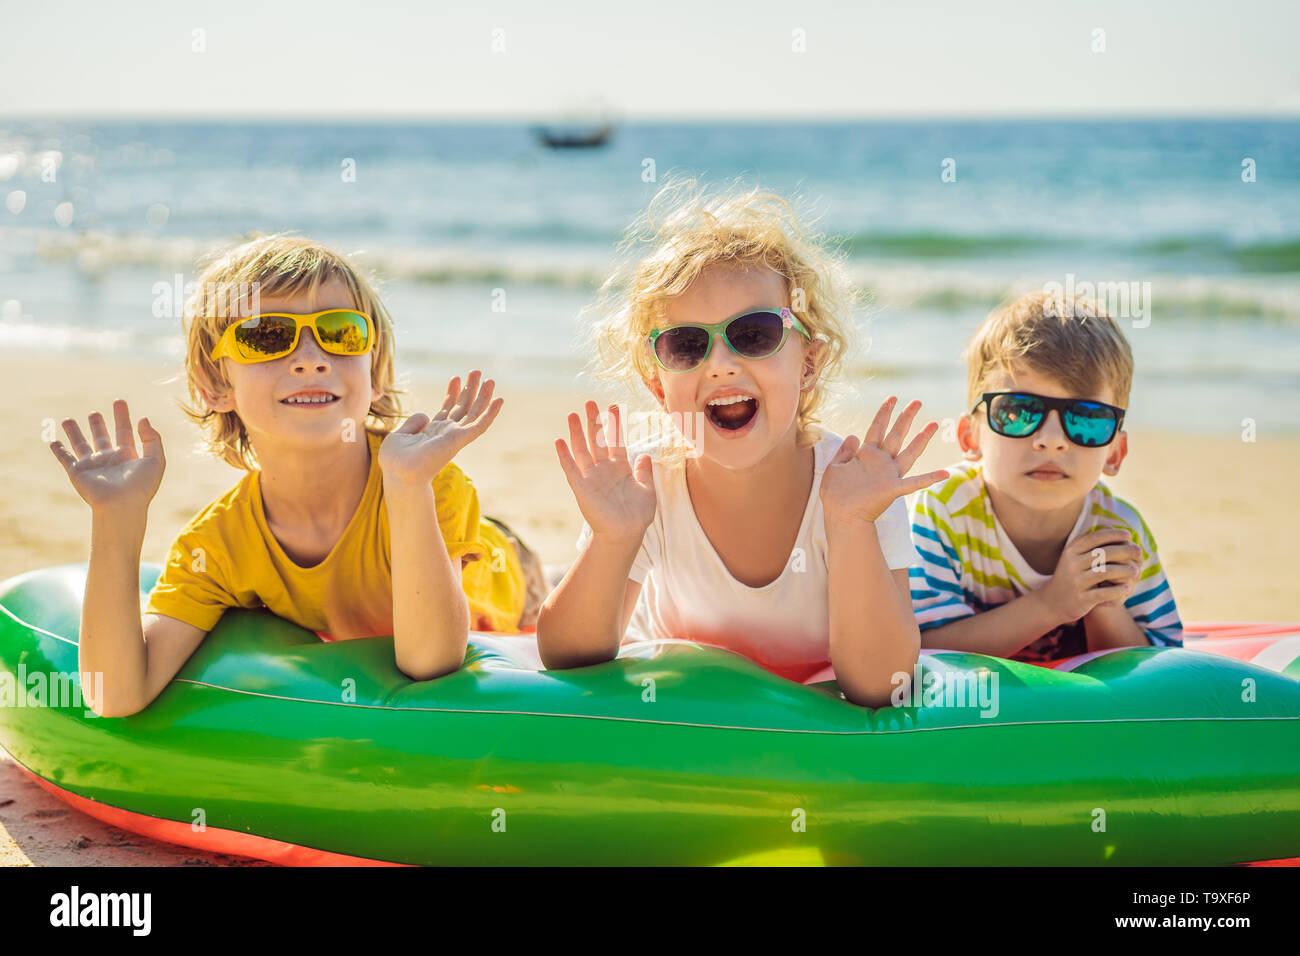 Children sit on an inflatable mattress in sunglasses against the sea and have fun - Stock Image